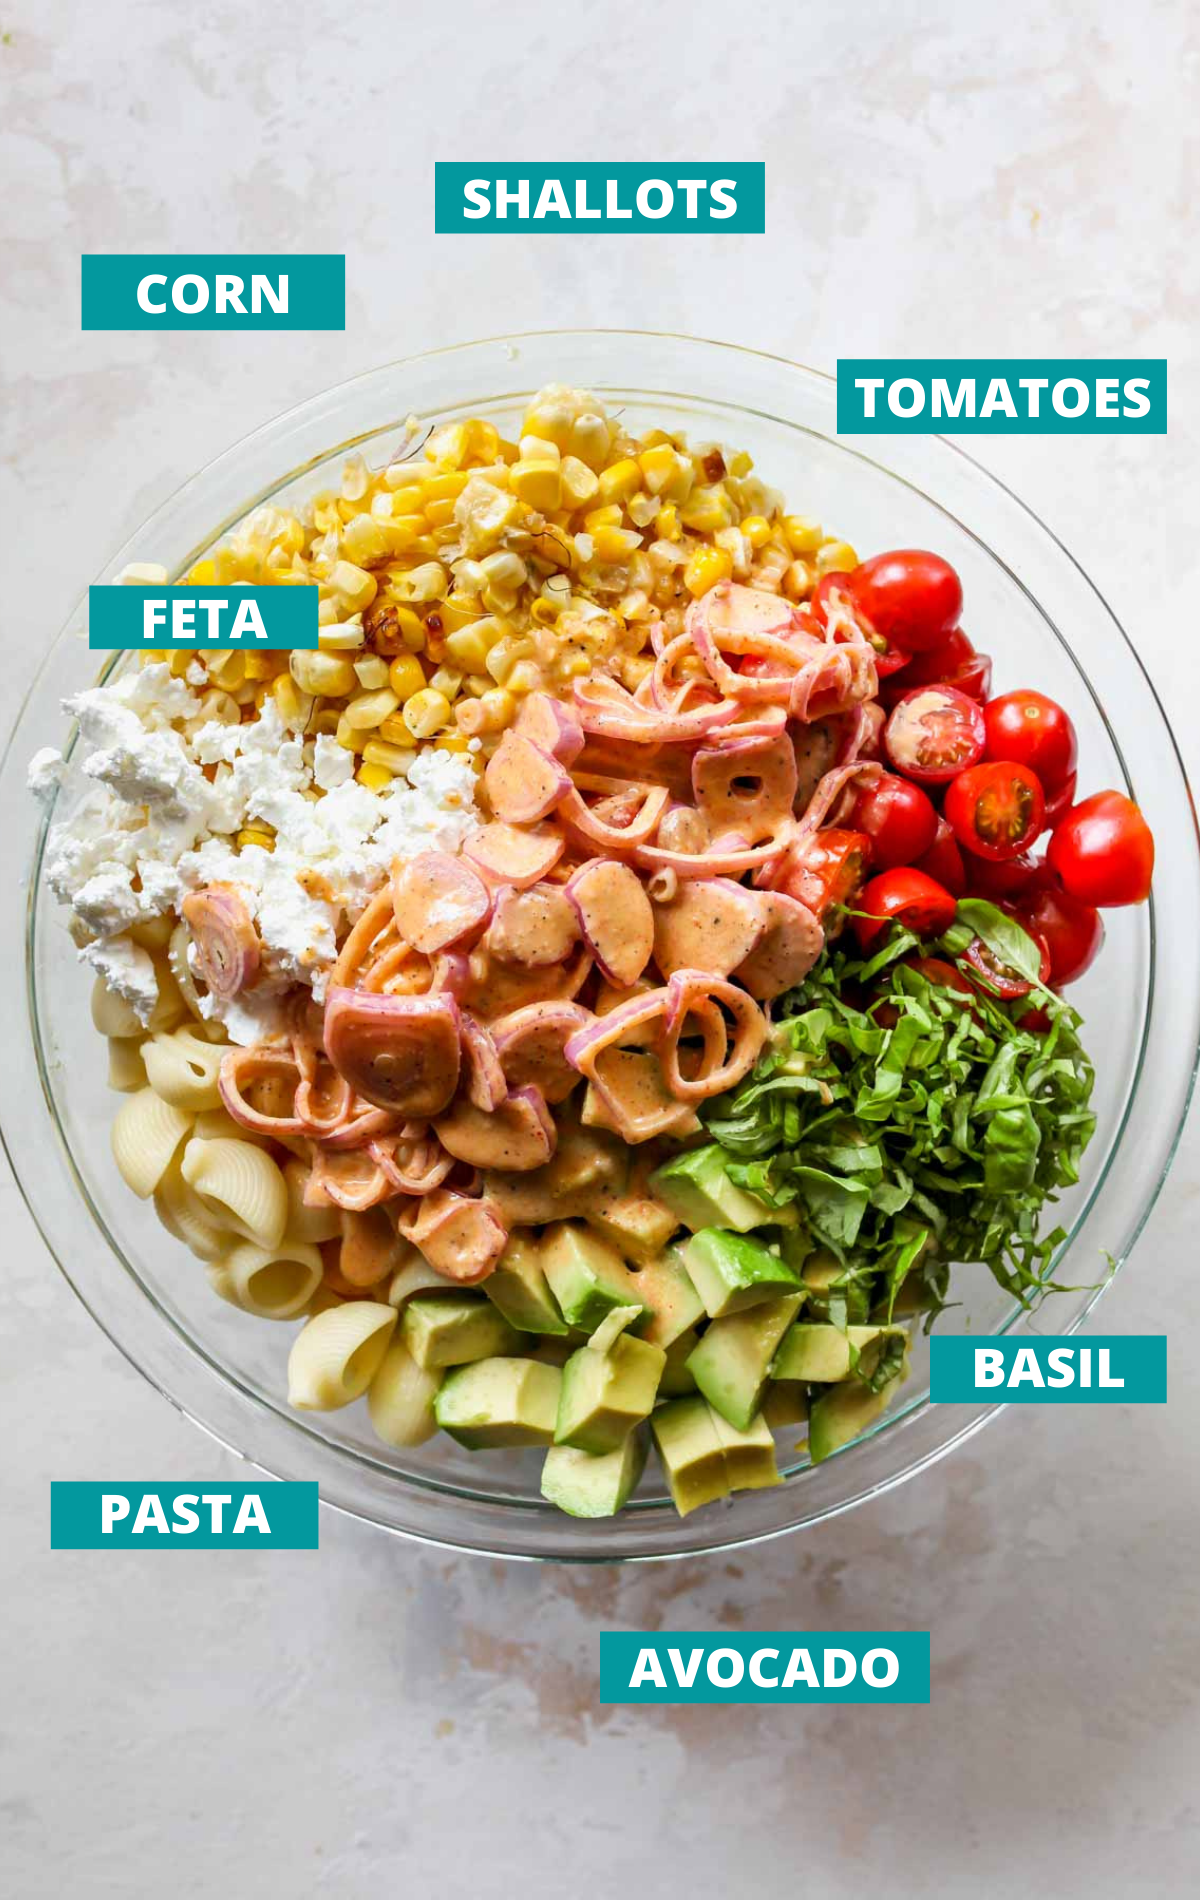 Pasta salad ingredients in a bowl with blue labels